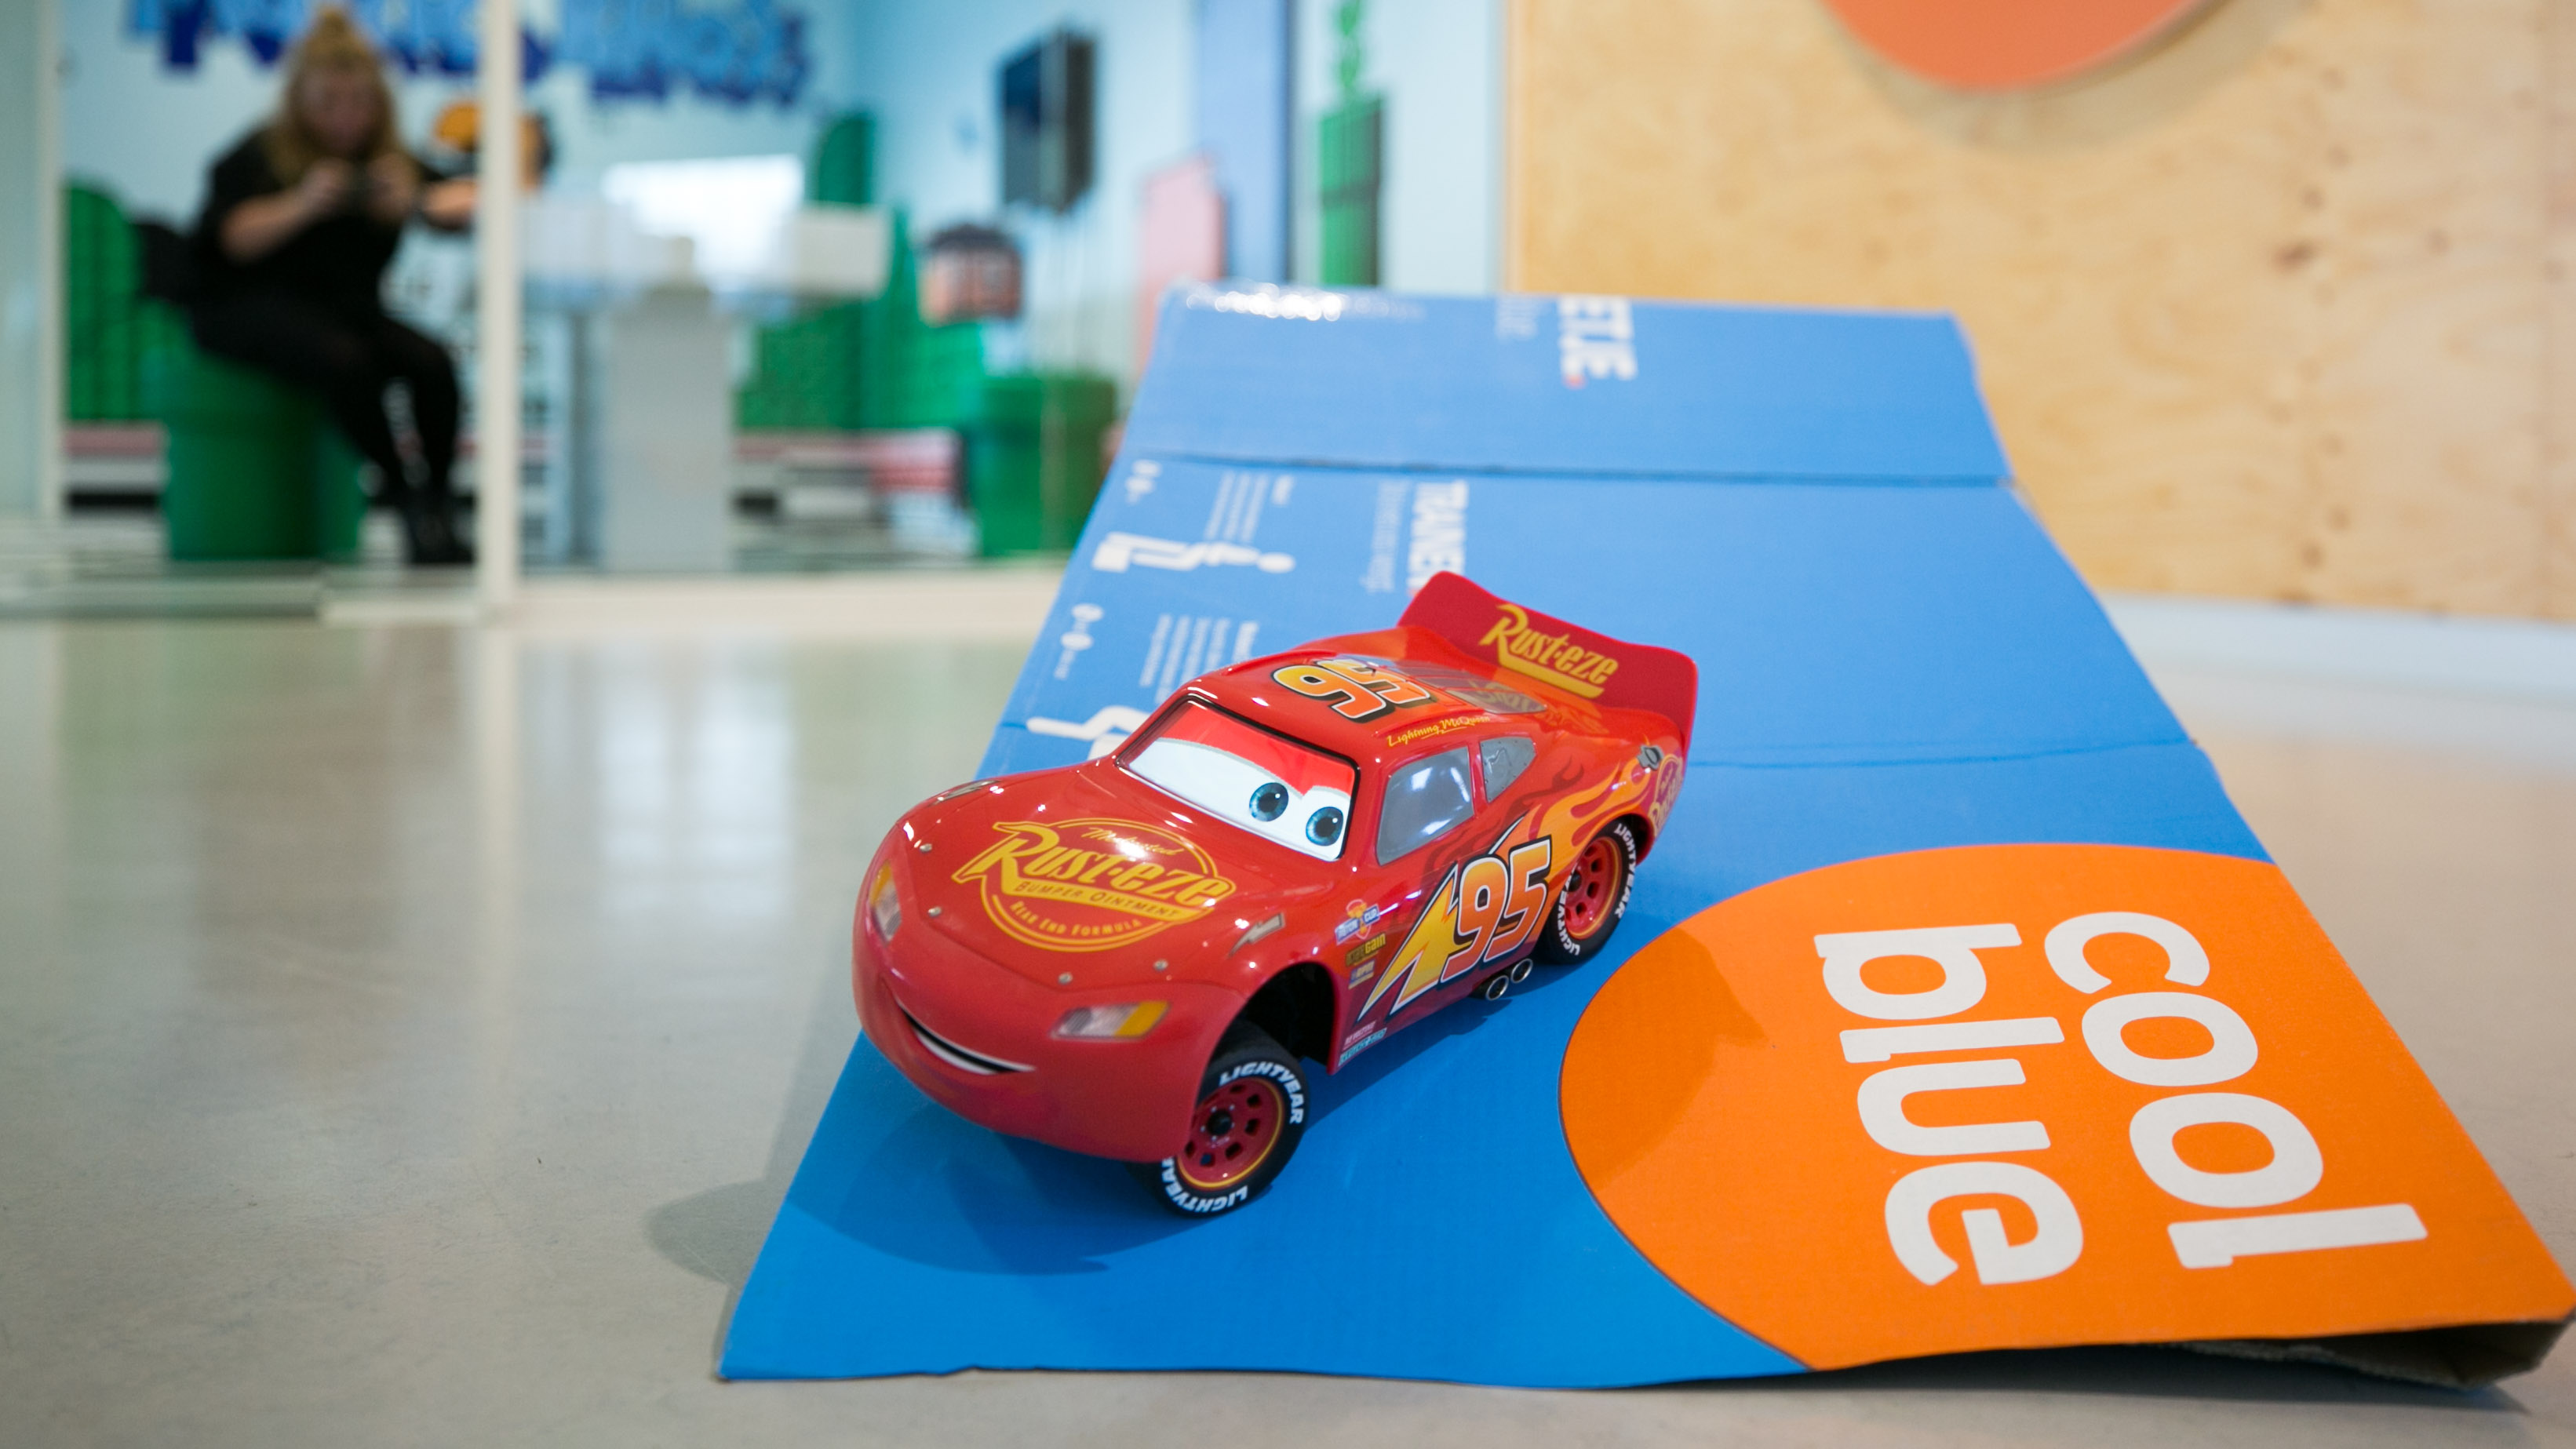 Vinden we cool: Sphero Lightning McQueen